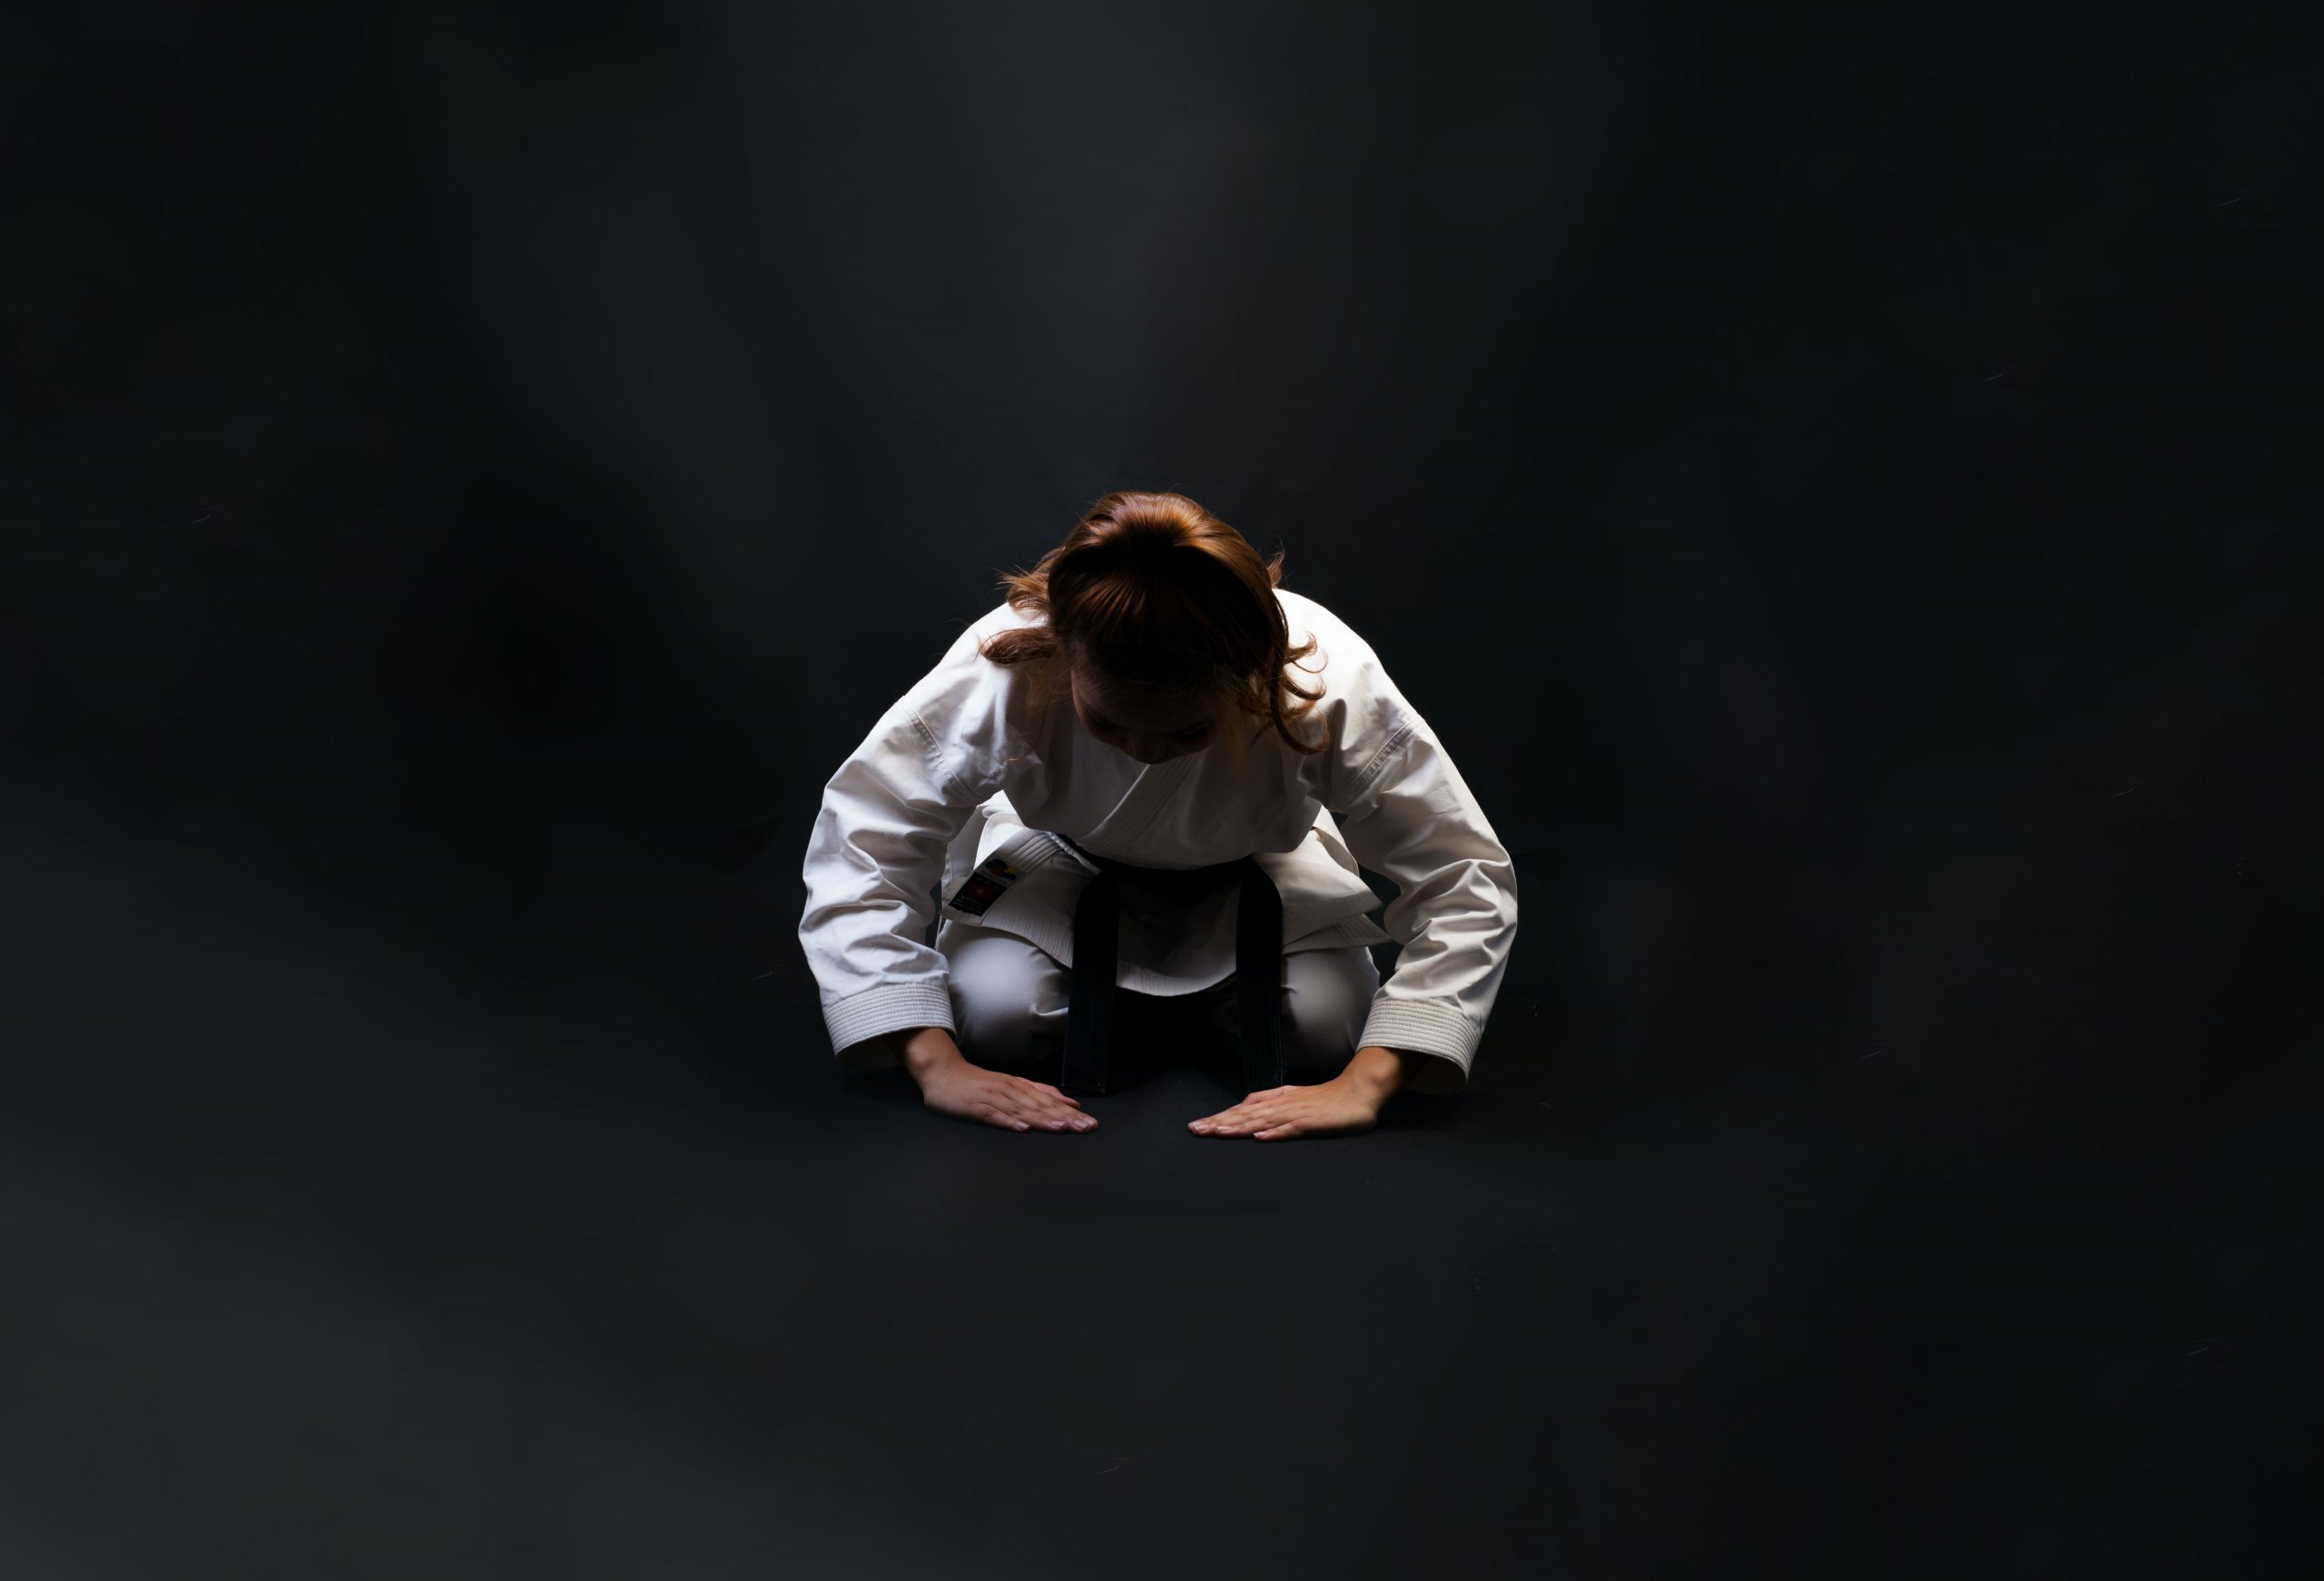 woman in karate uniform bowing